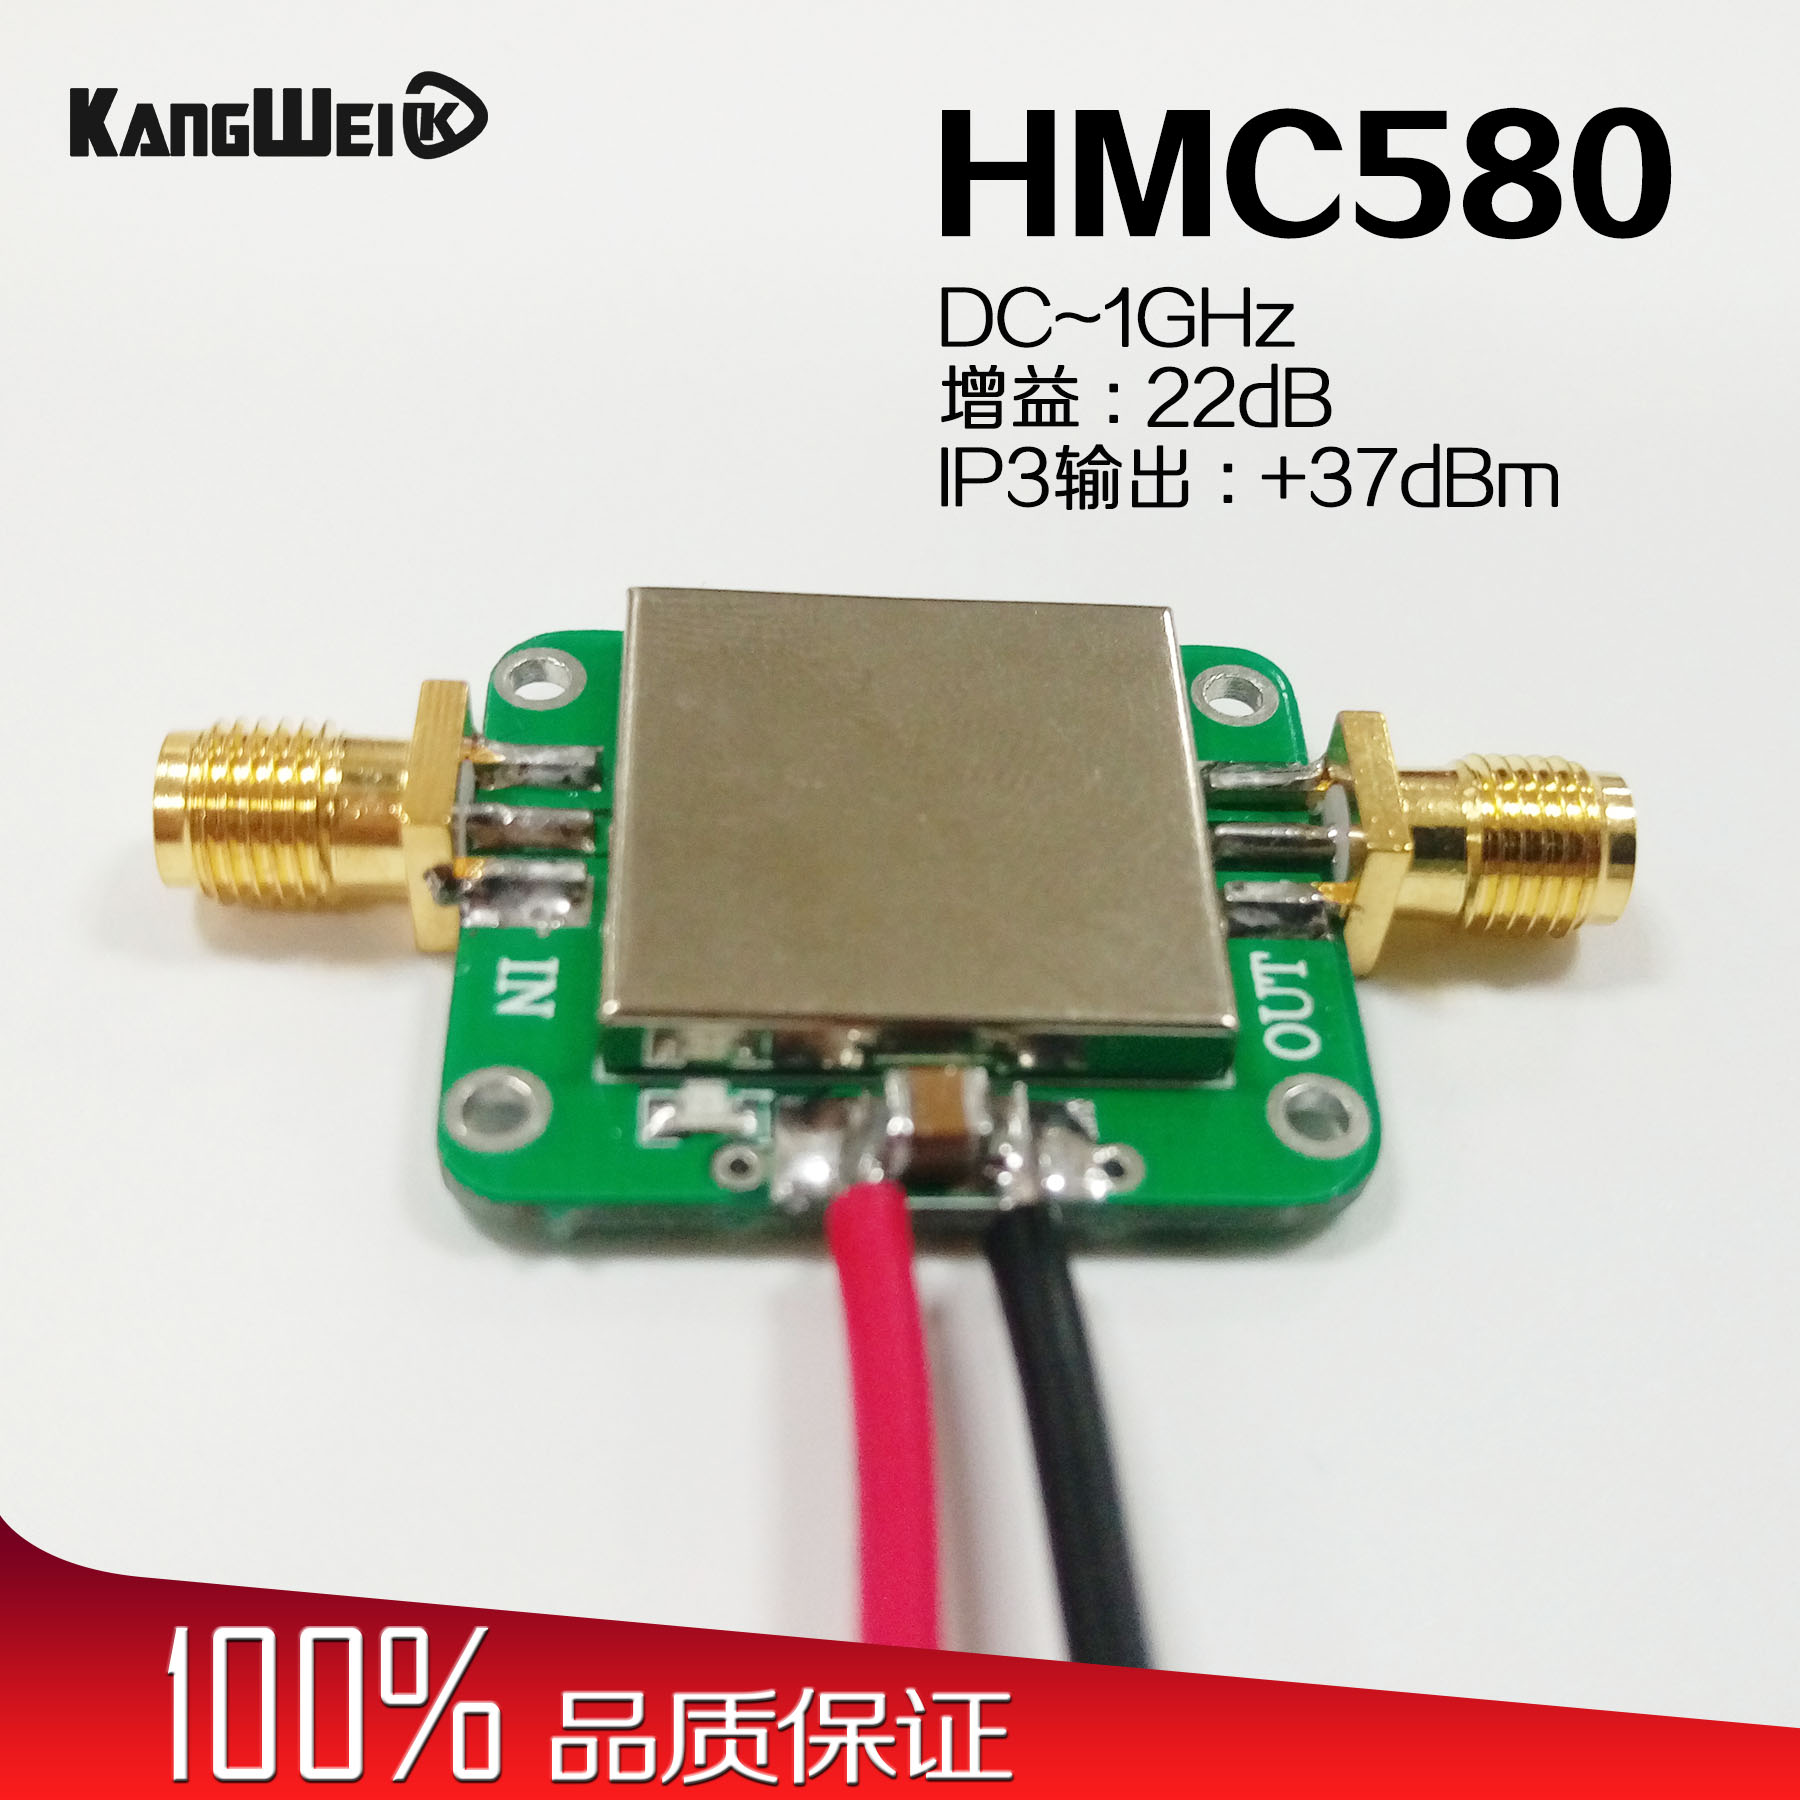 HMC580 RF power amplifier module, 22dB gain, IP3 output, +37dBm DC~1GHz<br>